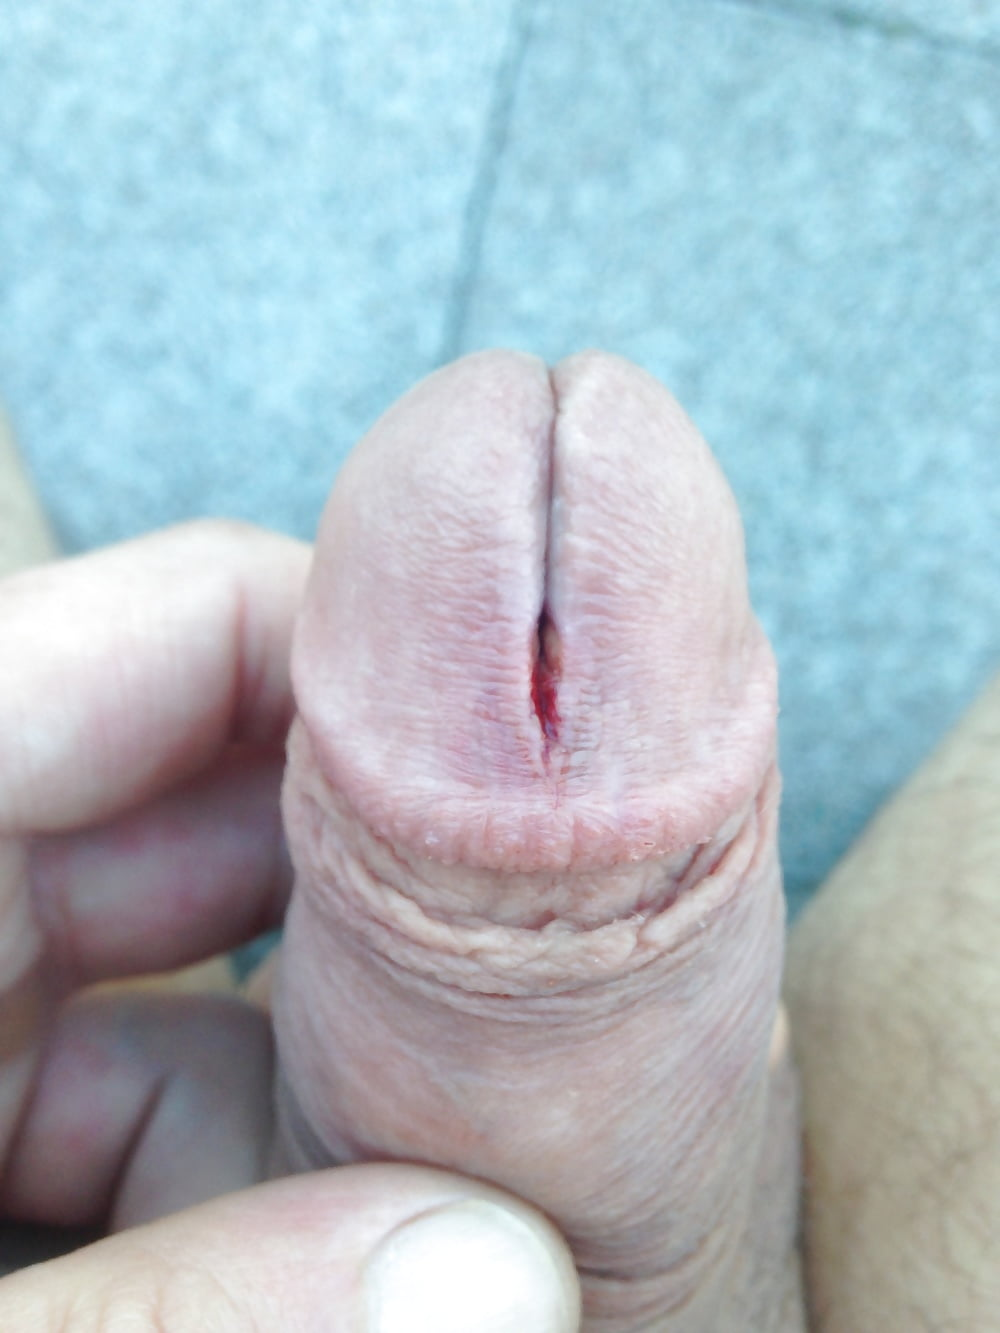 Message Penis glans pics opinion you